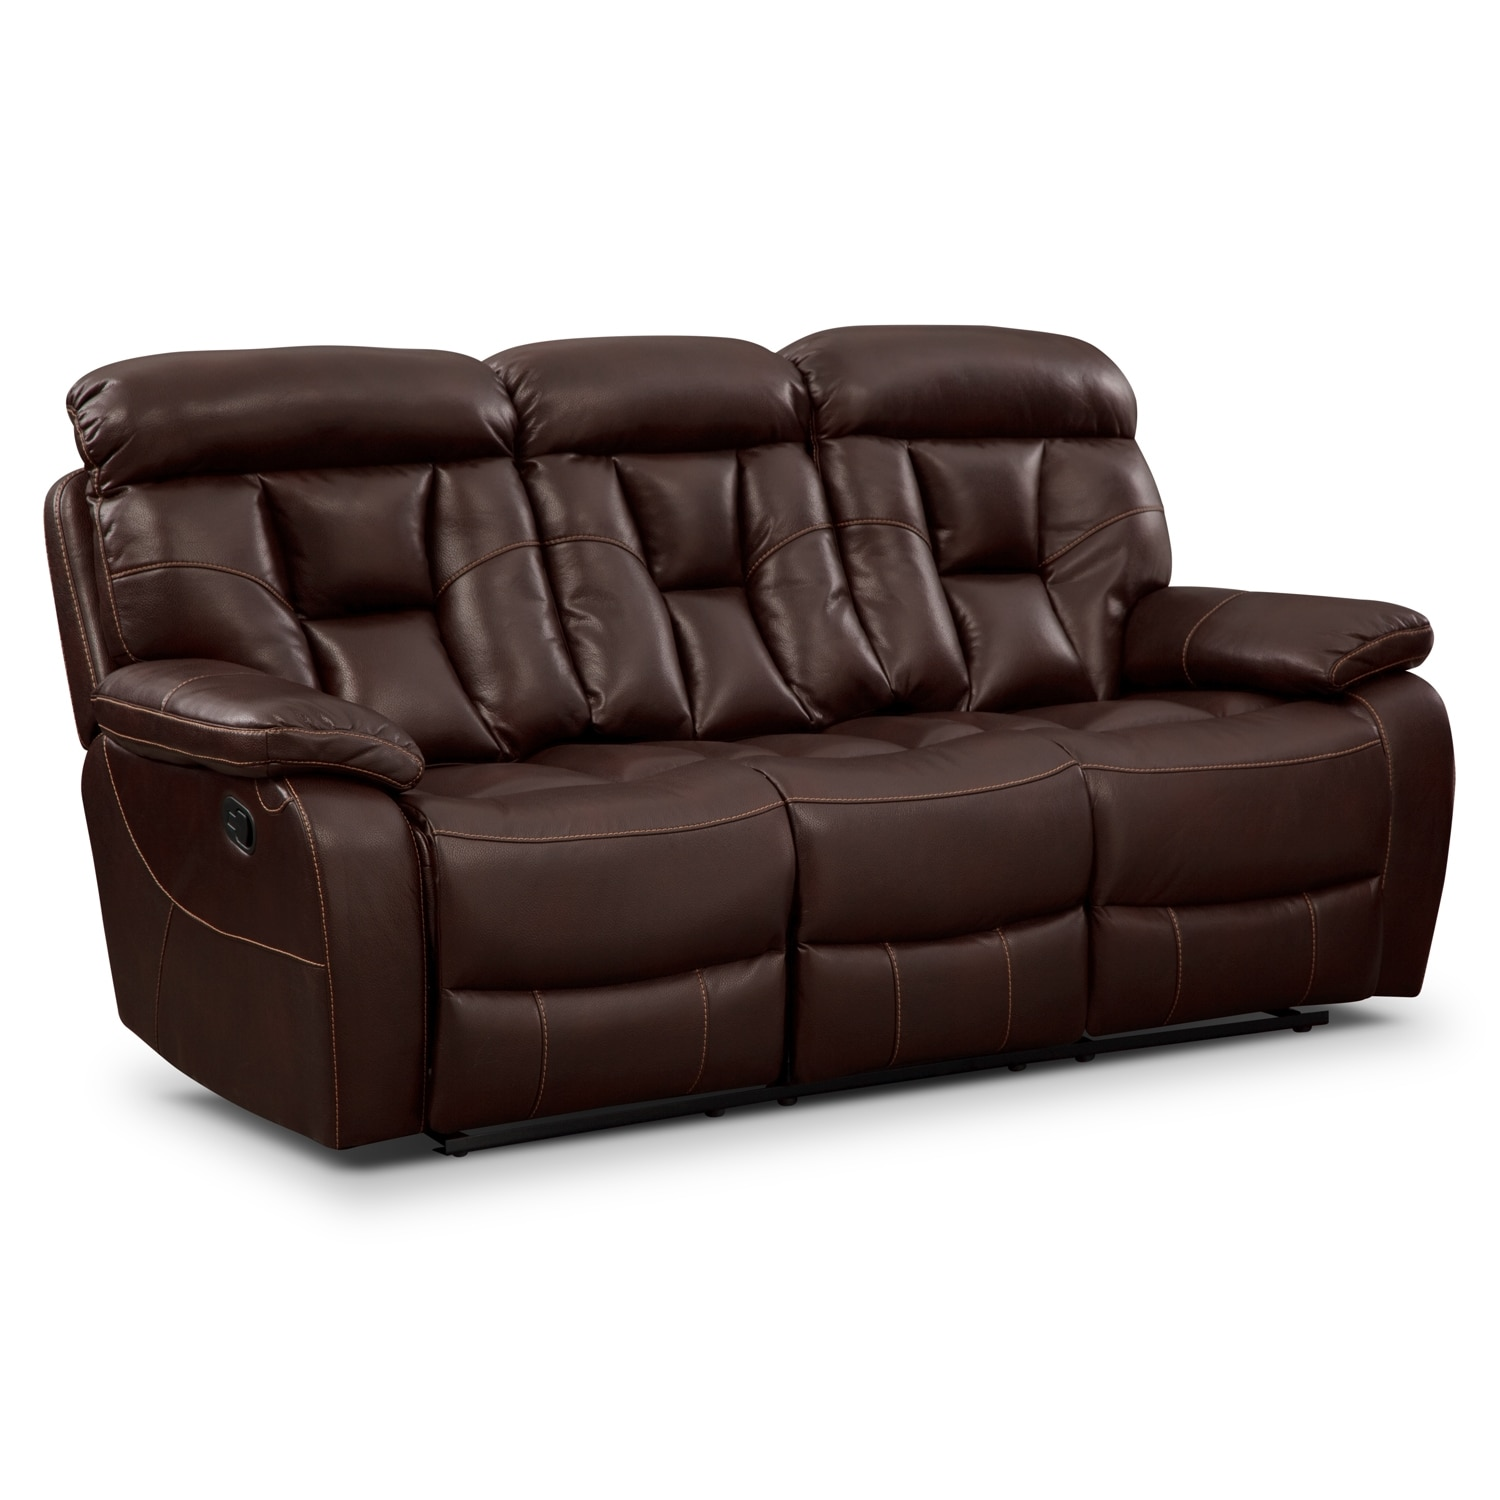 Dakota reclining sofa american signature furniture Sofa loveseat